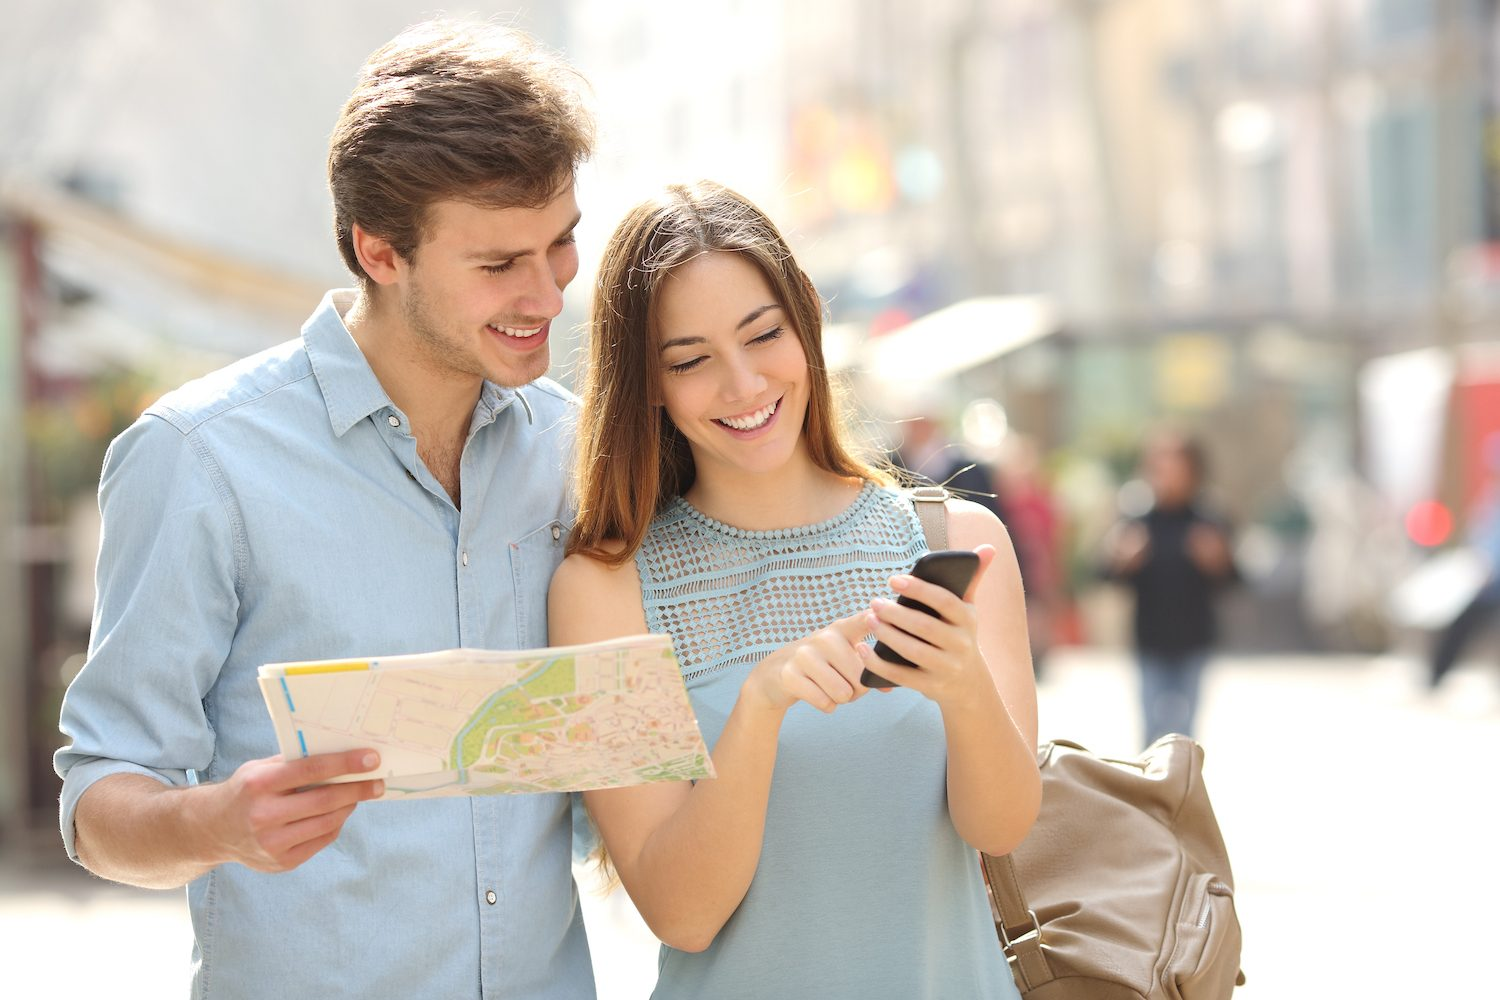 Travelers Look at Phone App